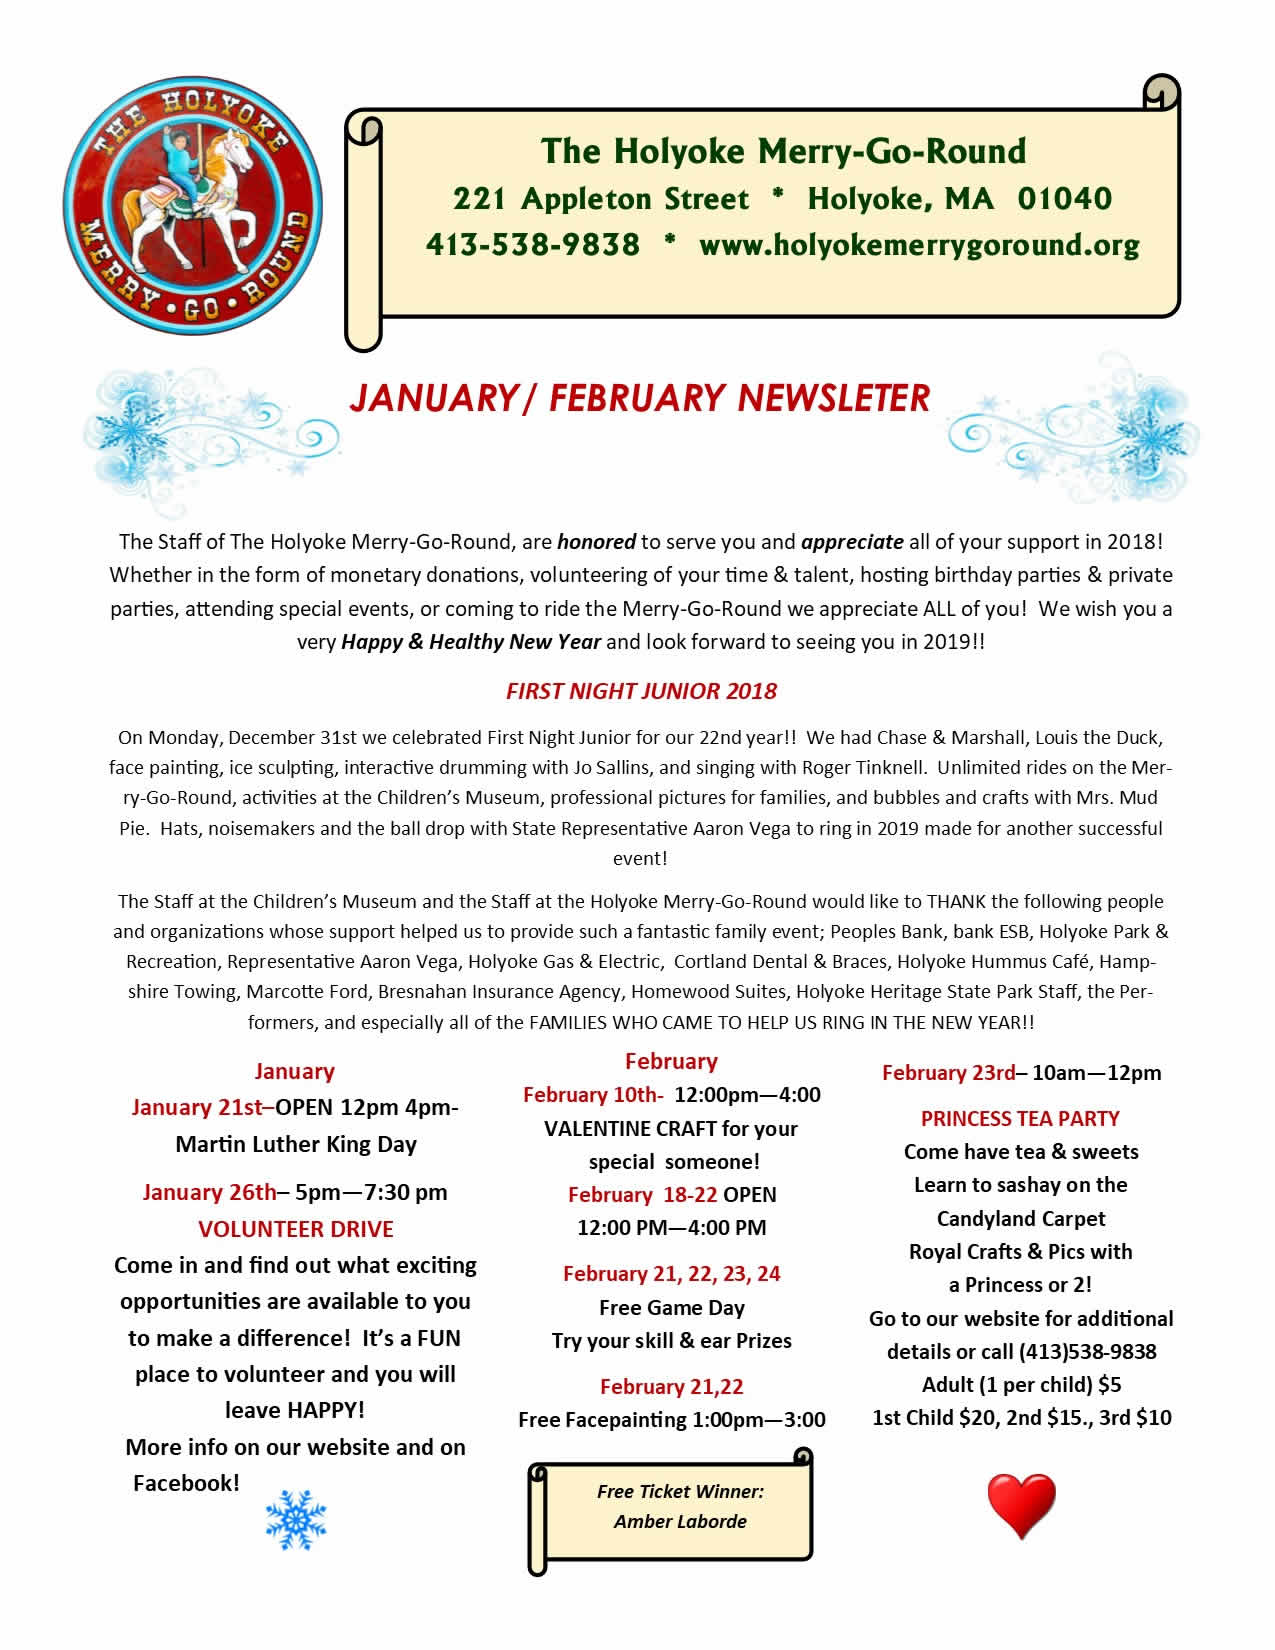 Holyoke Merry-Go-Round January & February Newsletter